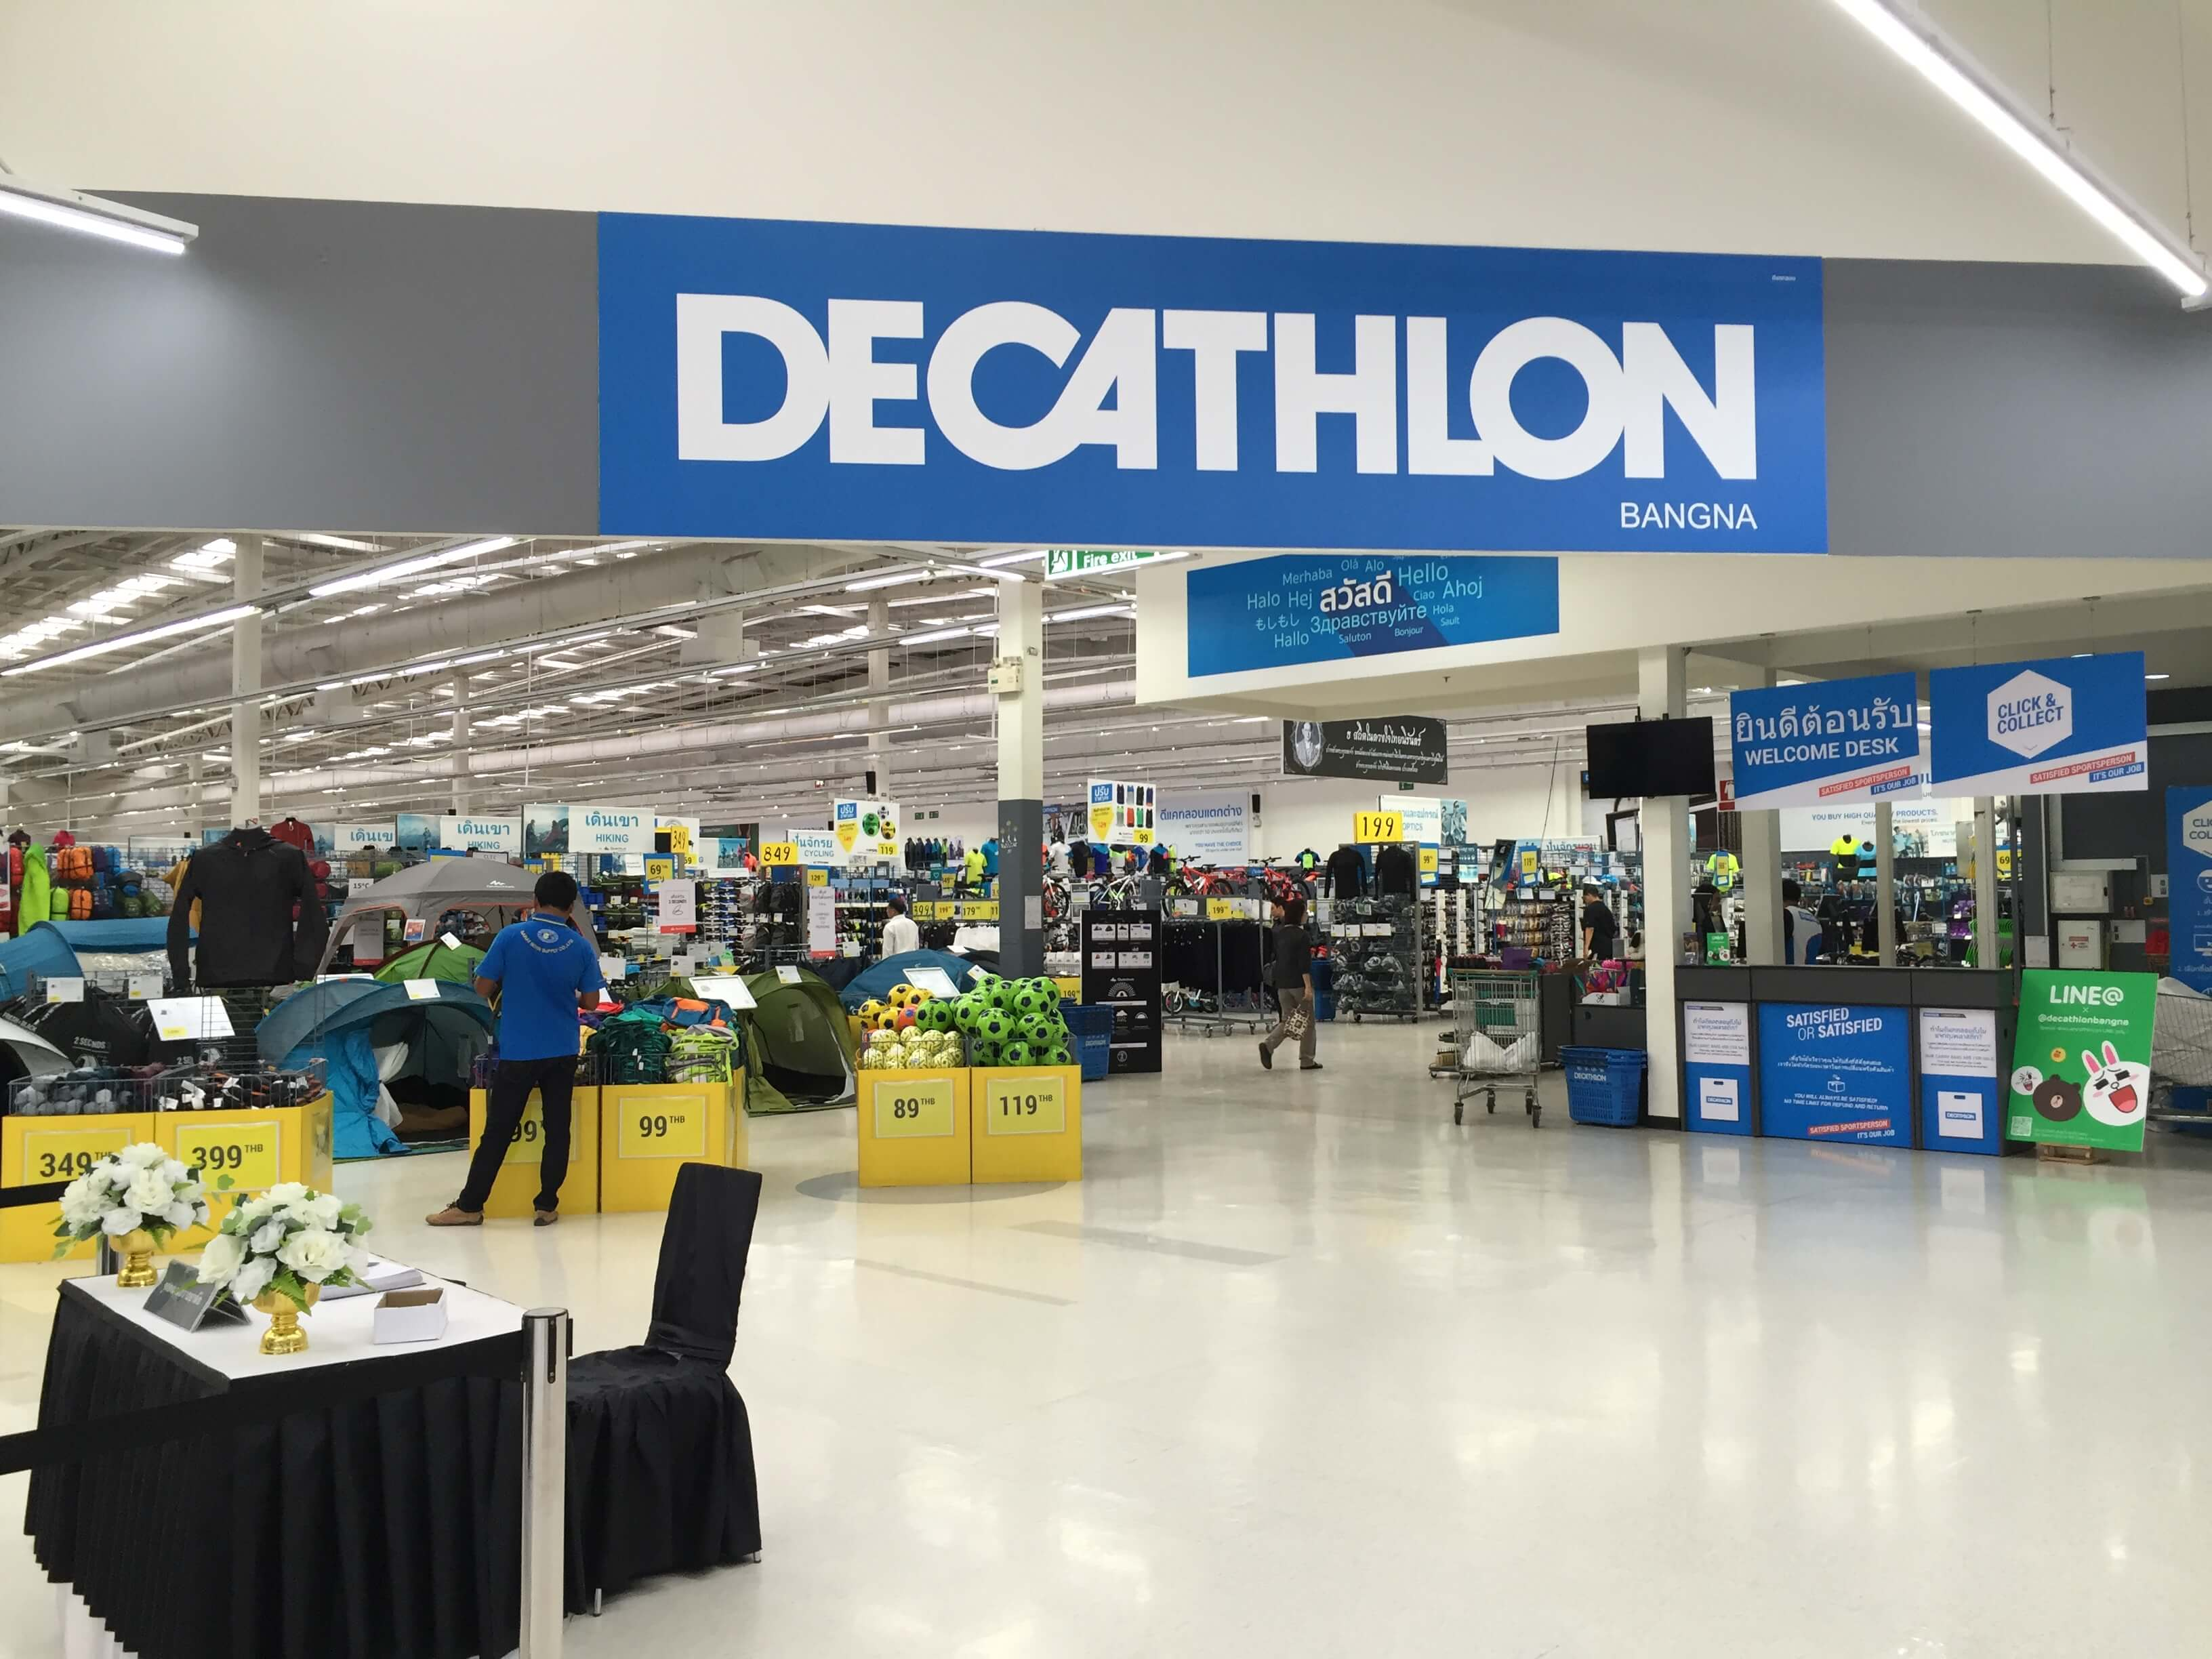 How To Get To Decathlon In Thailand | Not Your Typical Tourist